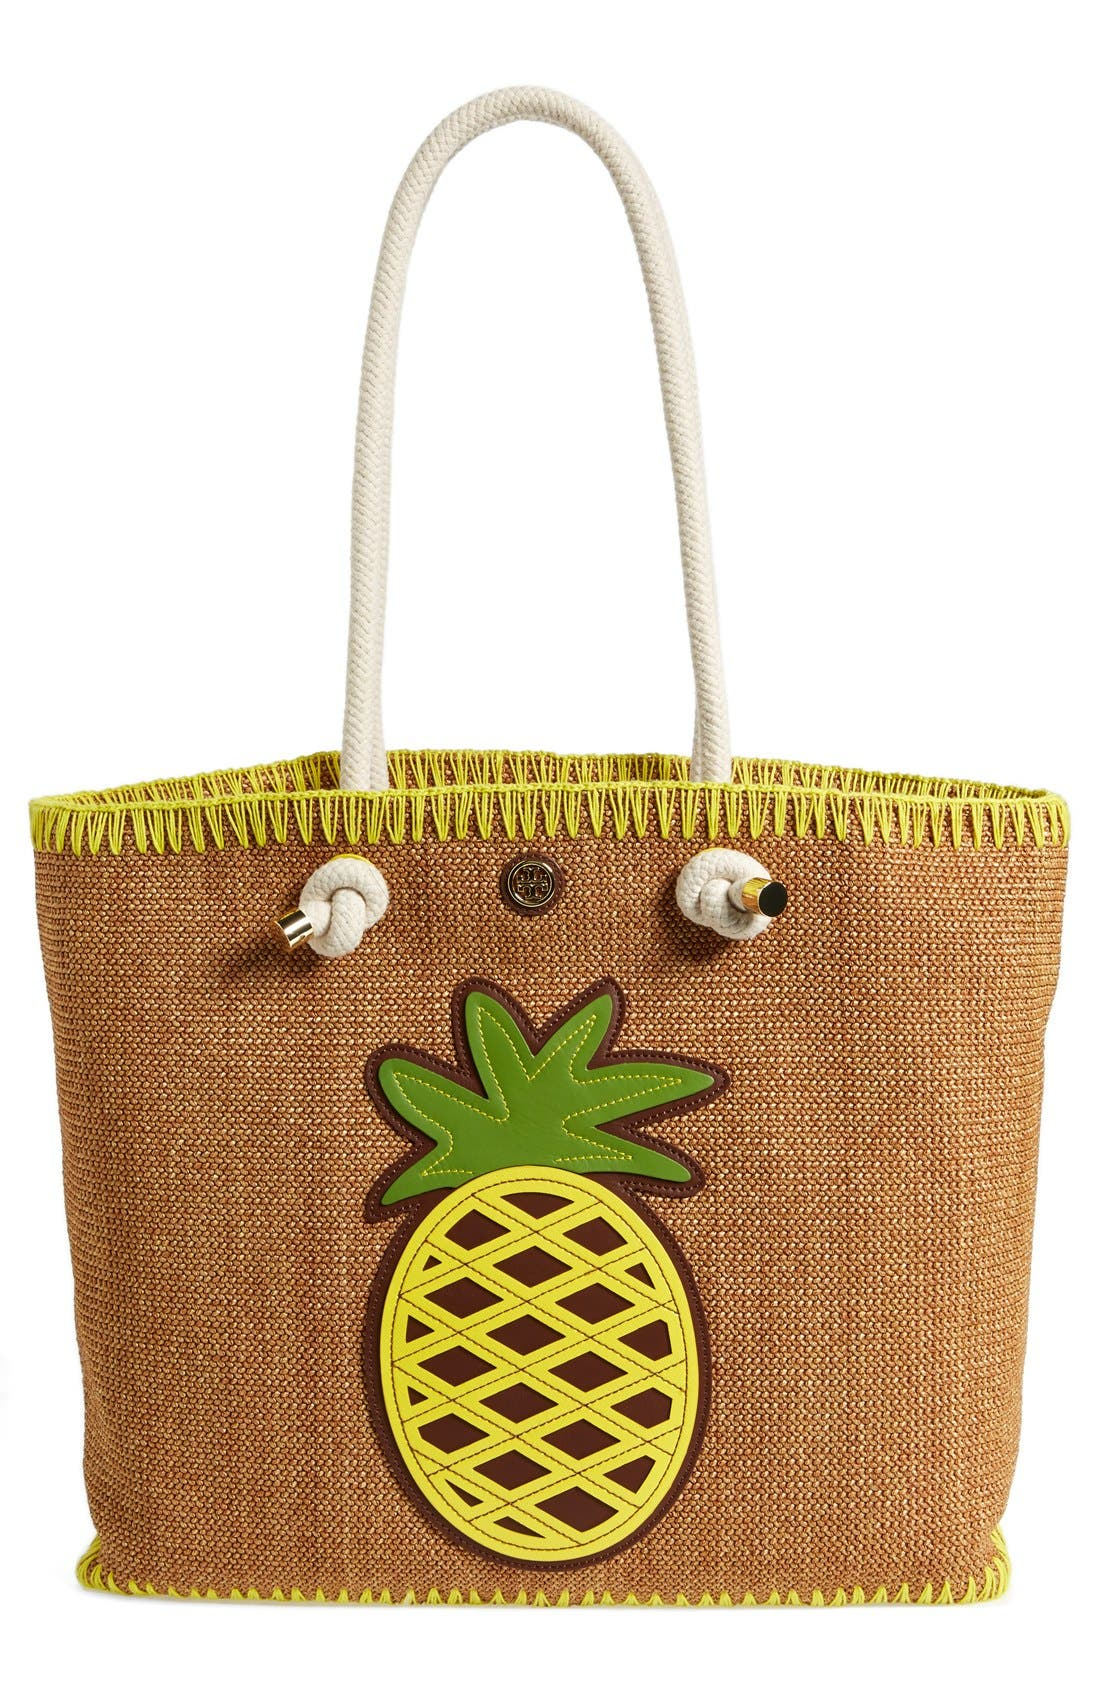 TORY BURCH 'Pineapple' Woven Tote, Main, color, 200